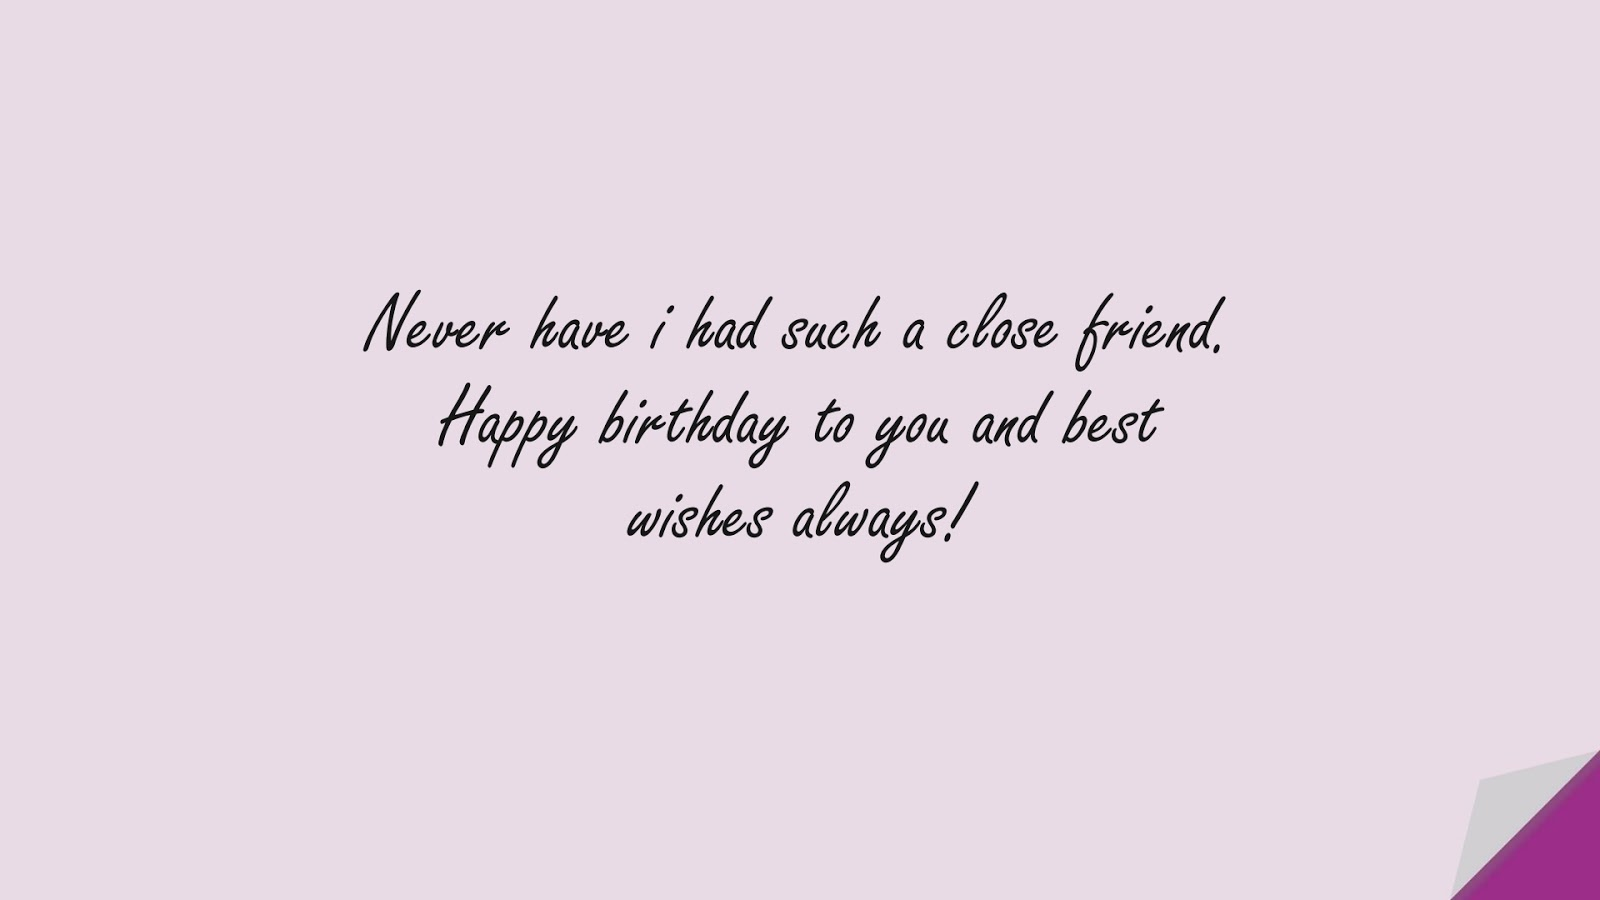 Never have i had such a close friend. Happy birthday to you and best wishes always!FALSE